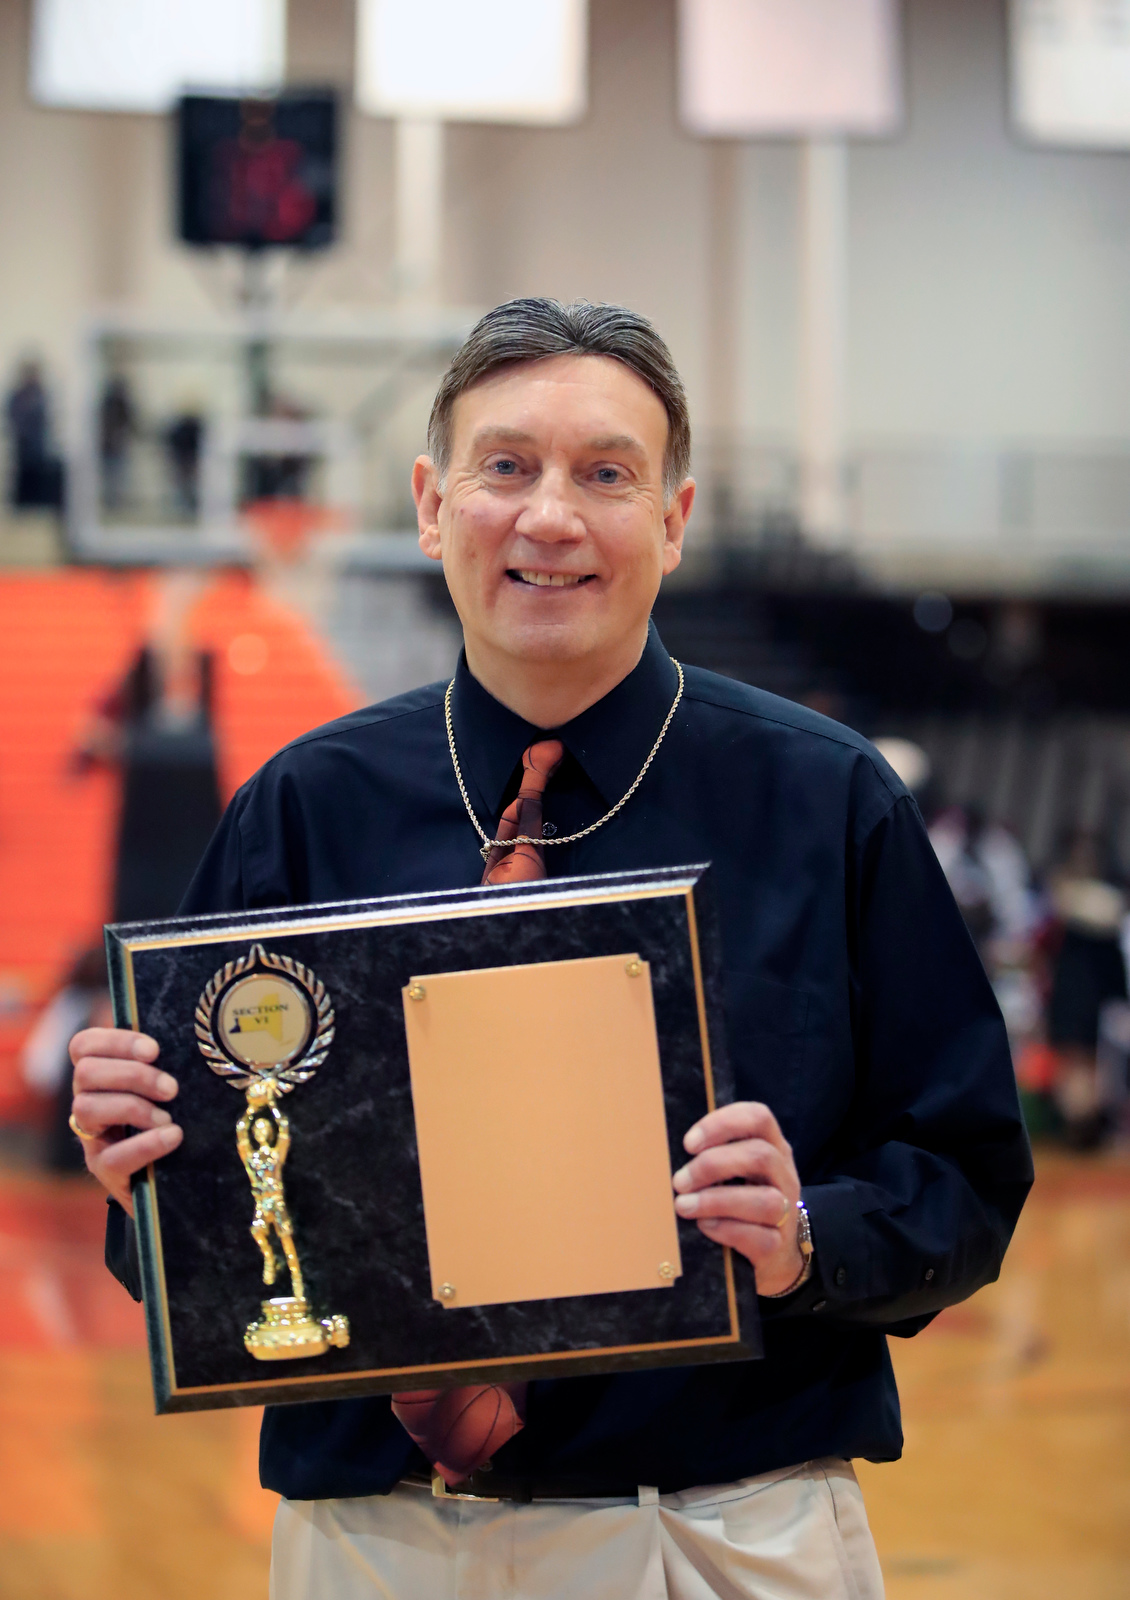 coach-600th victory-Anastasia-Olean-CIty Honors-Section VI-Class Class B1-Final-Buffalo State Sports Arena-Scull